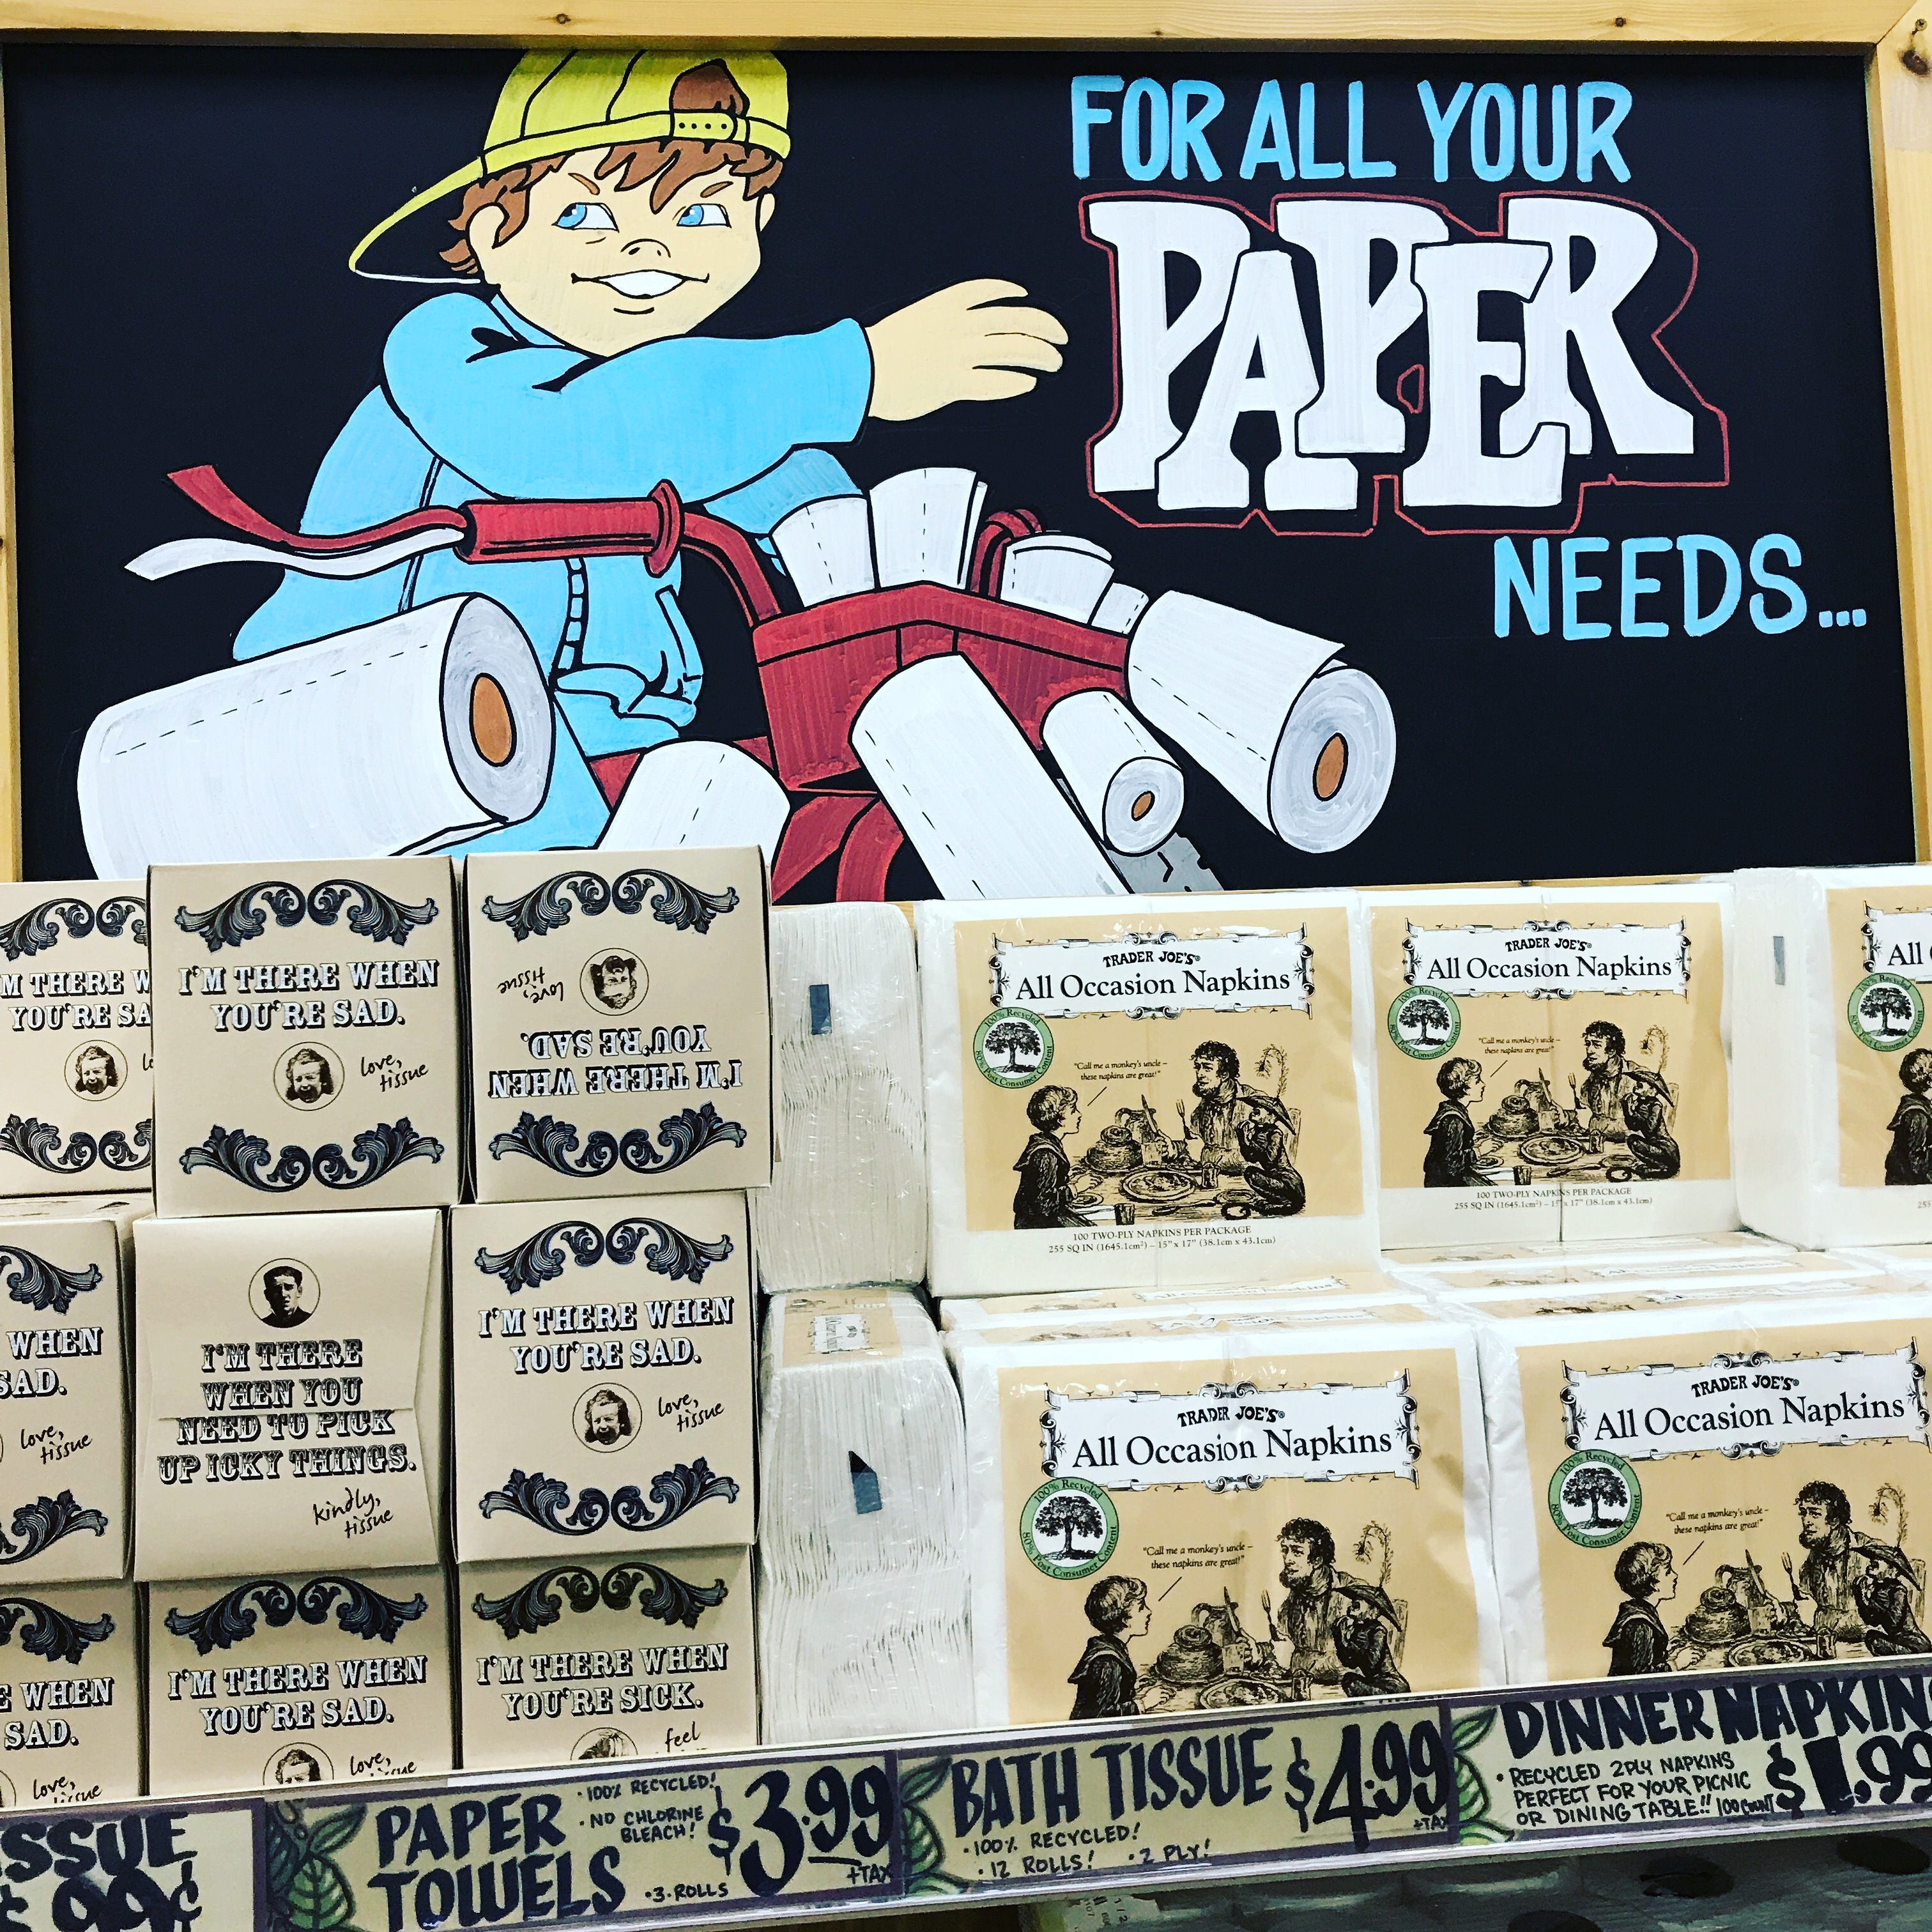 Trader Joe's with that Paperboy reference